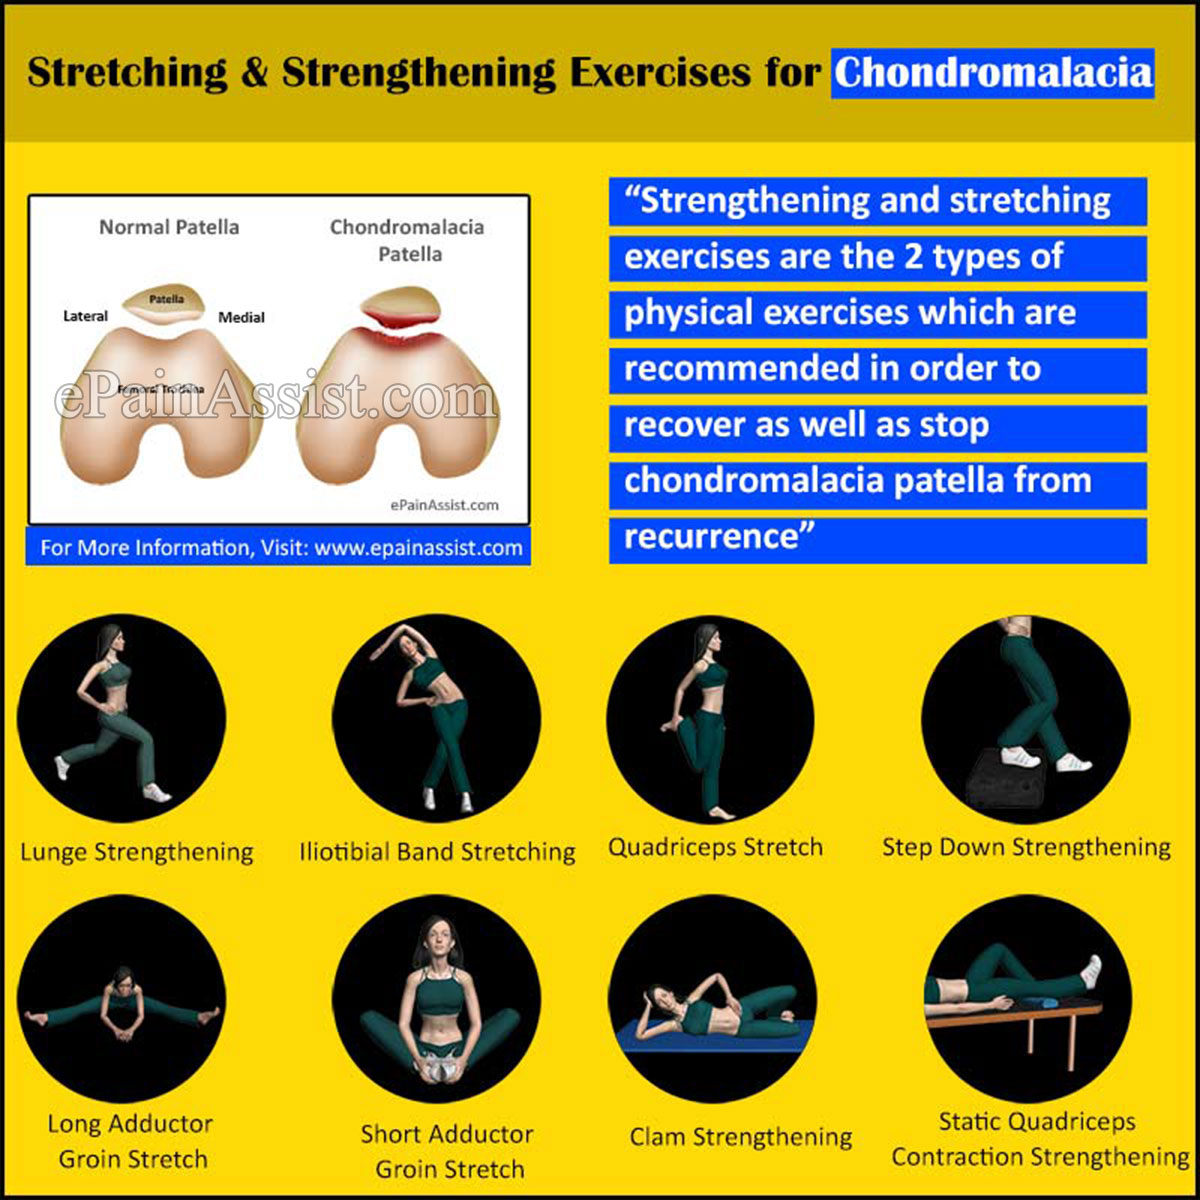 chondromalacia patella|sports massage|exercises|stretching, Skeleton